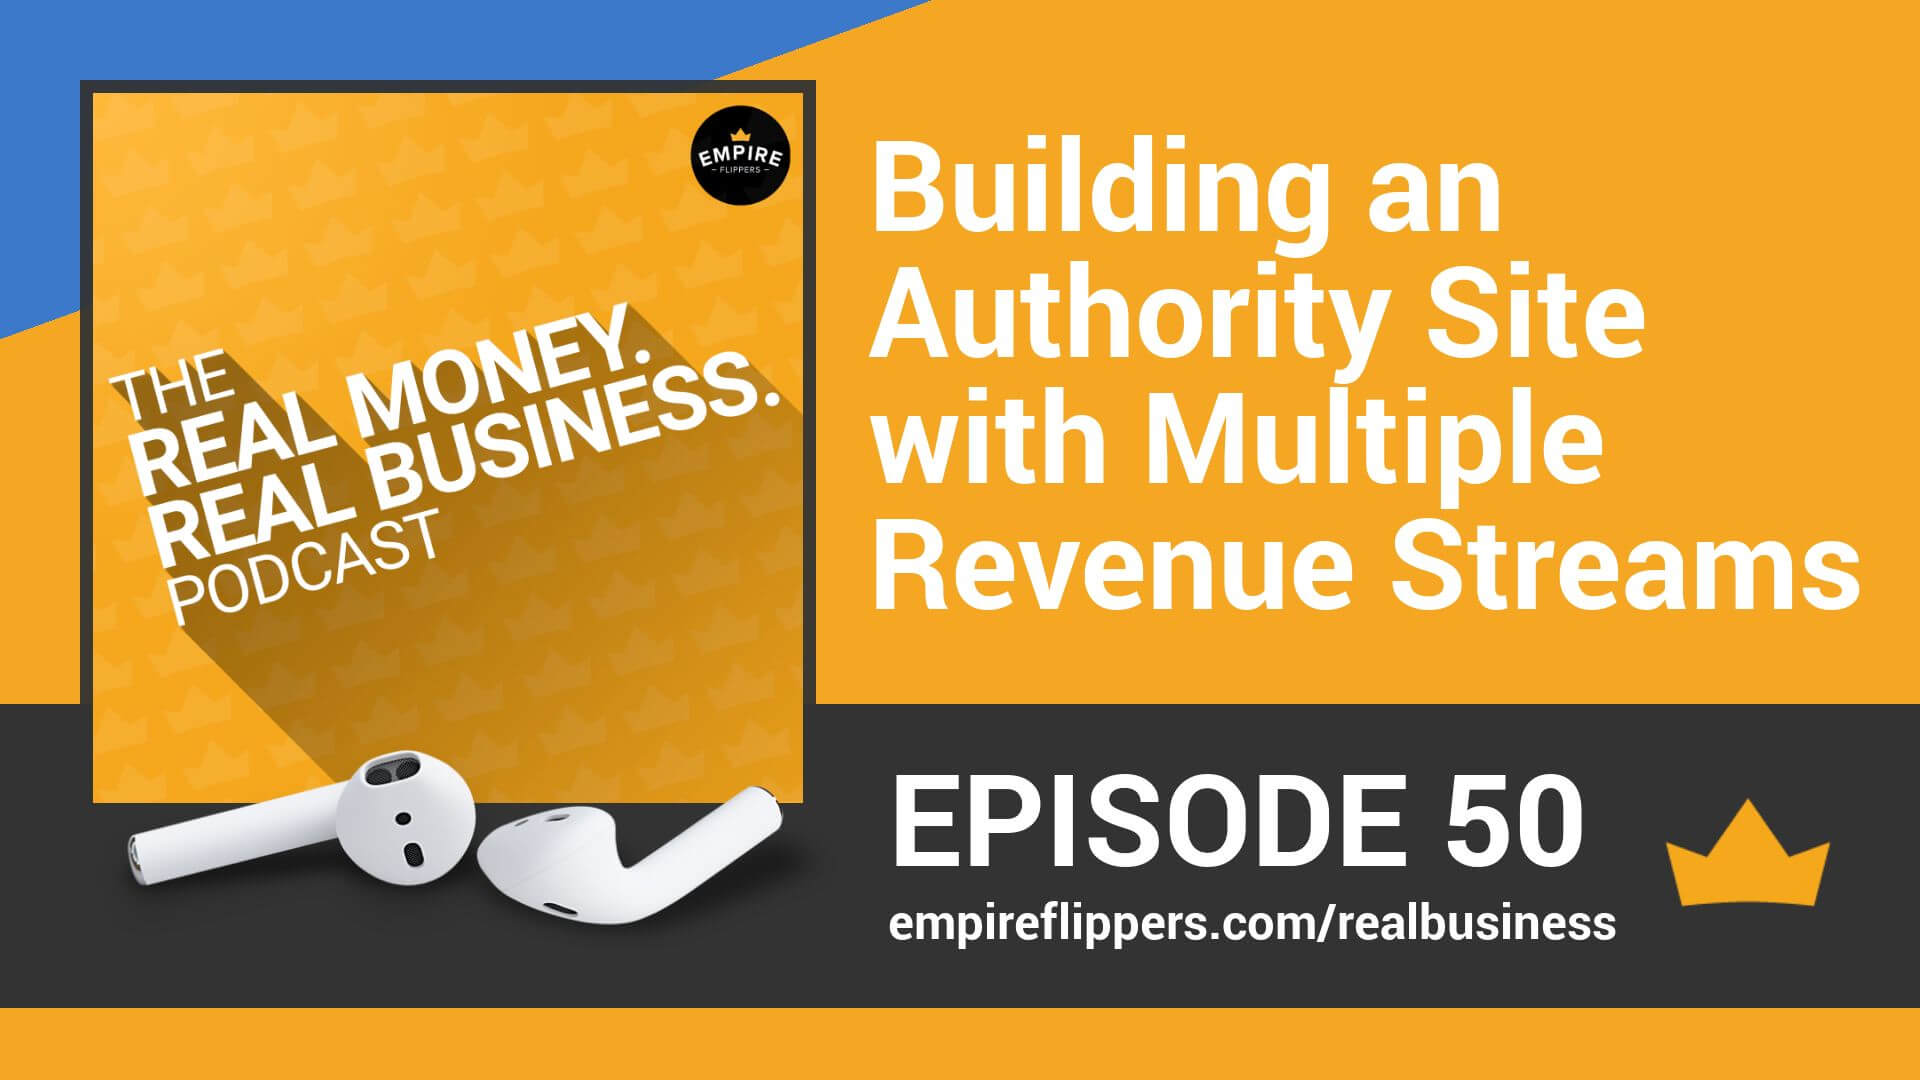 RMRB 50 - Building an Authority Site with Multiple Revenue Streams